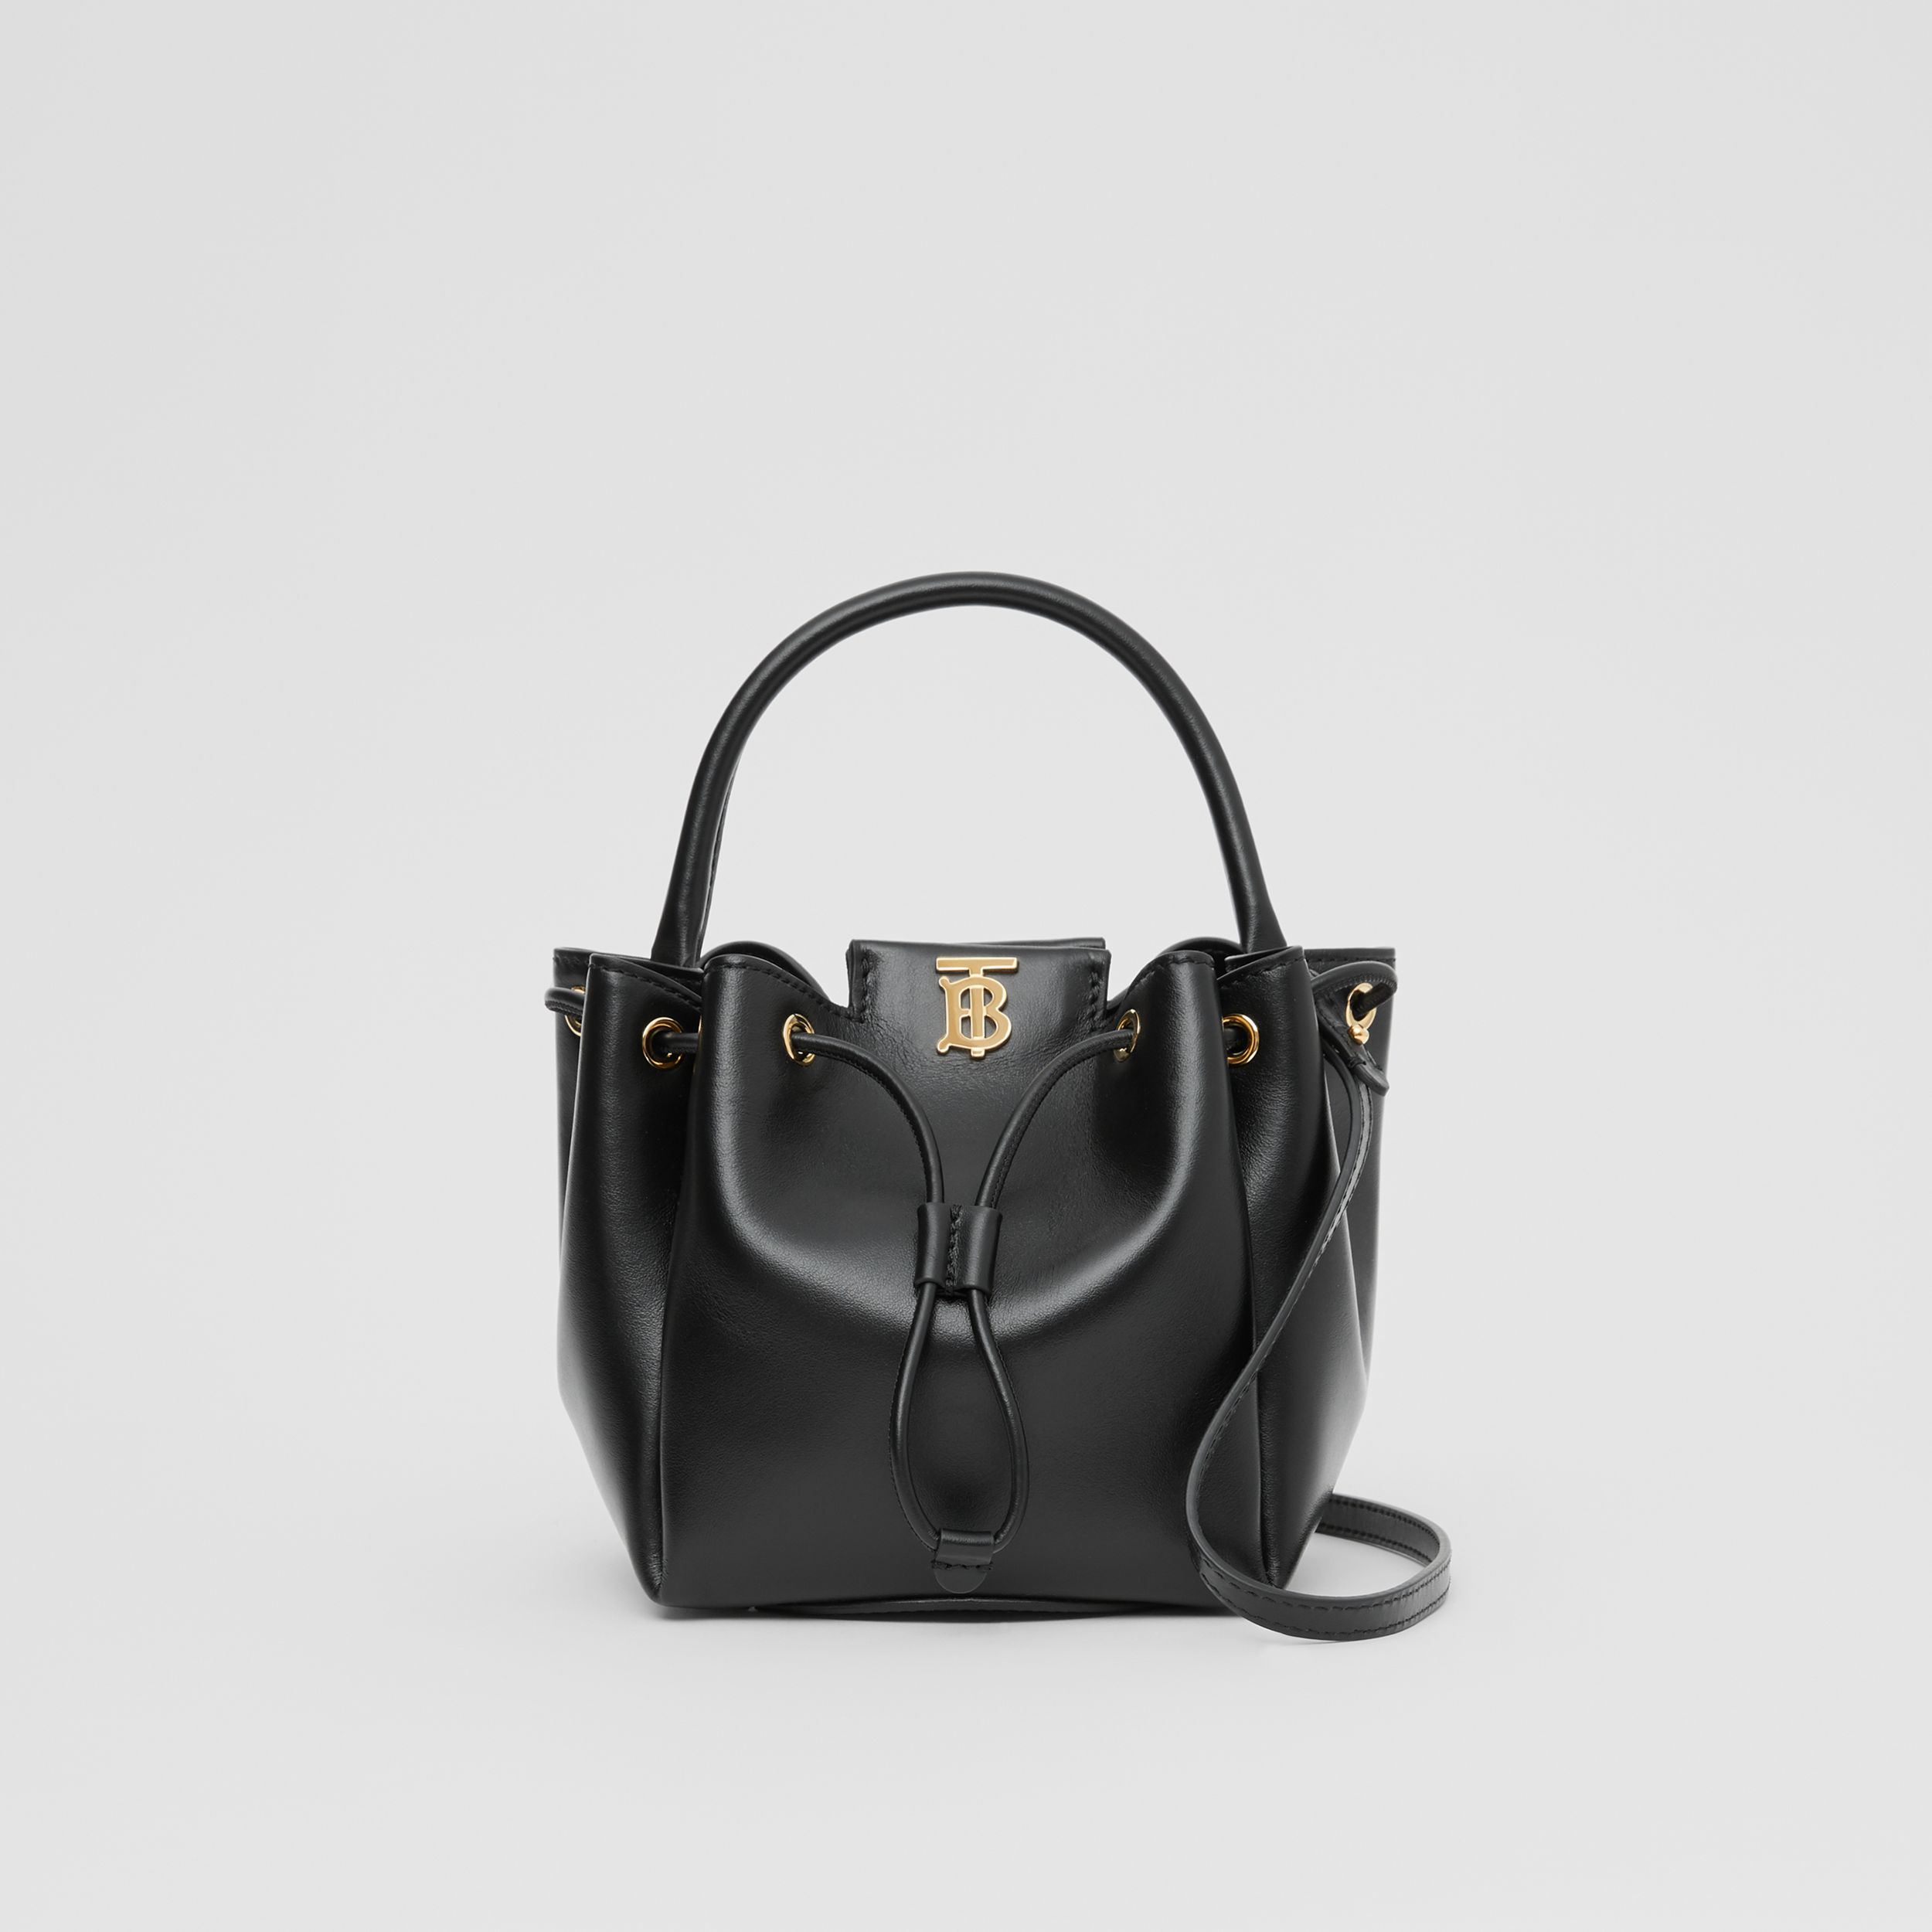 Monogram Motif Leather Bucket Bag in Black - Women | Burberry Canada - 1